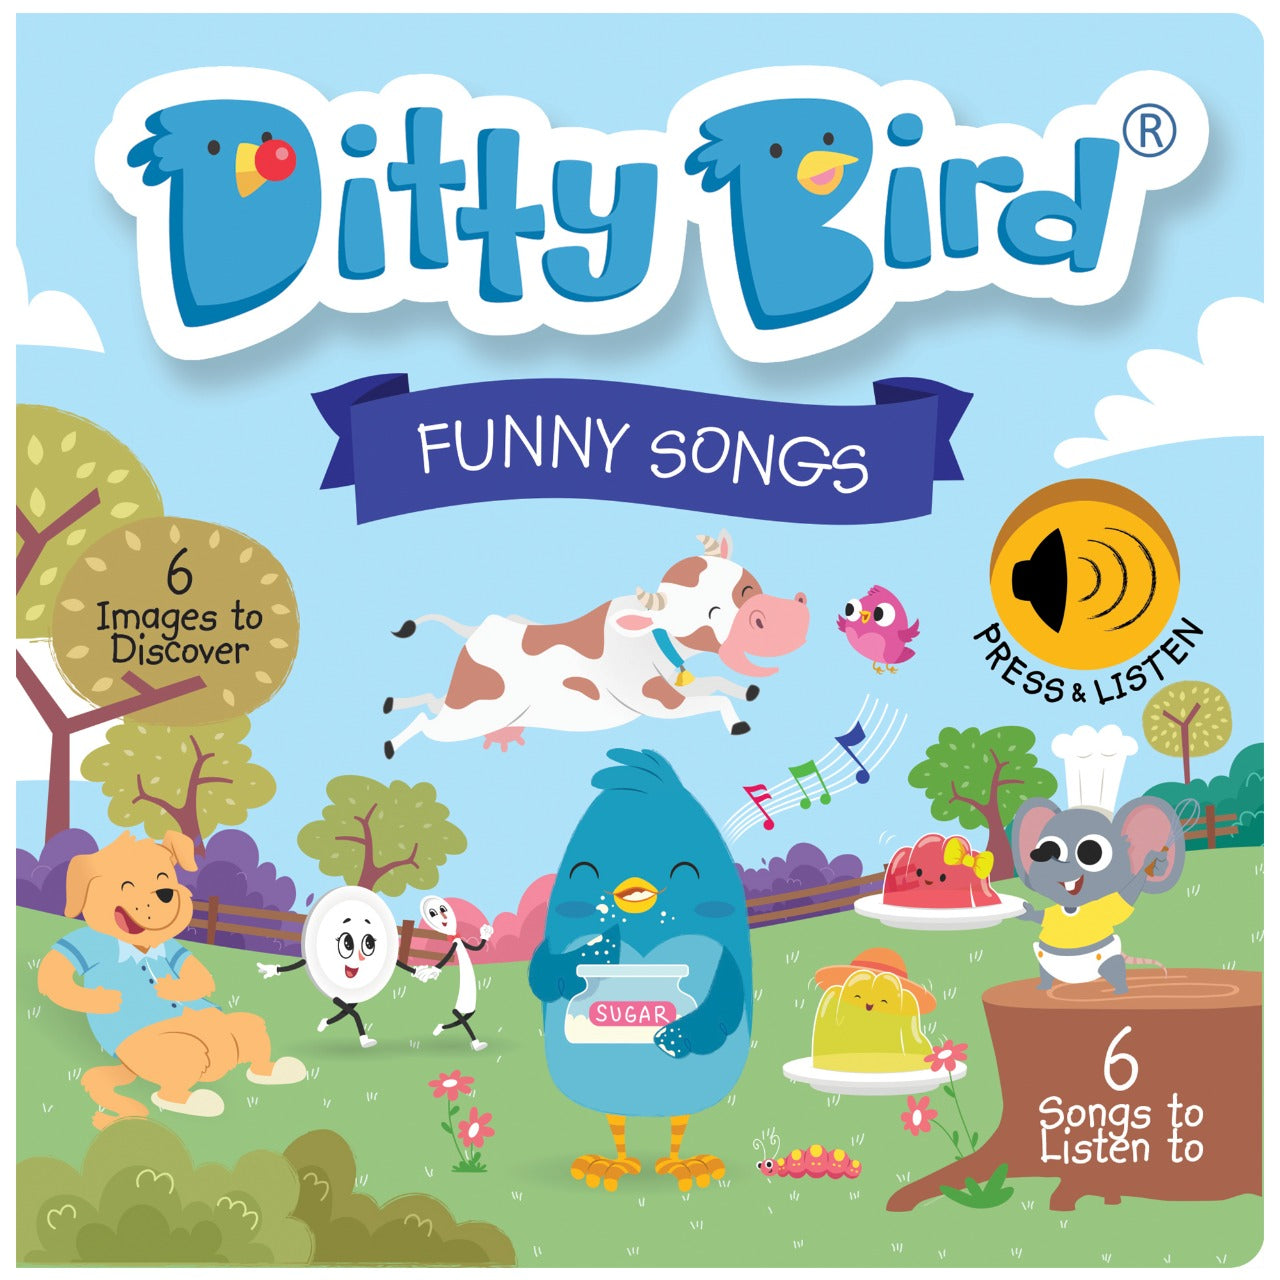 COMING SOON! DITTY BIRD - FUNNY SONGS